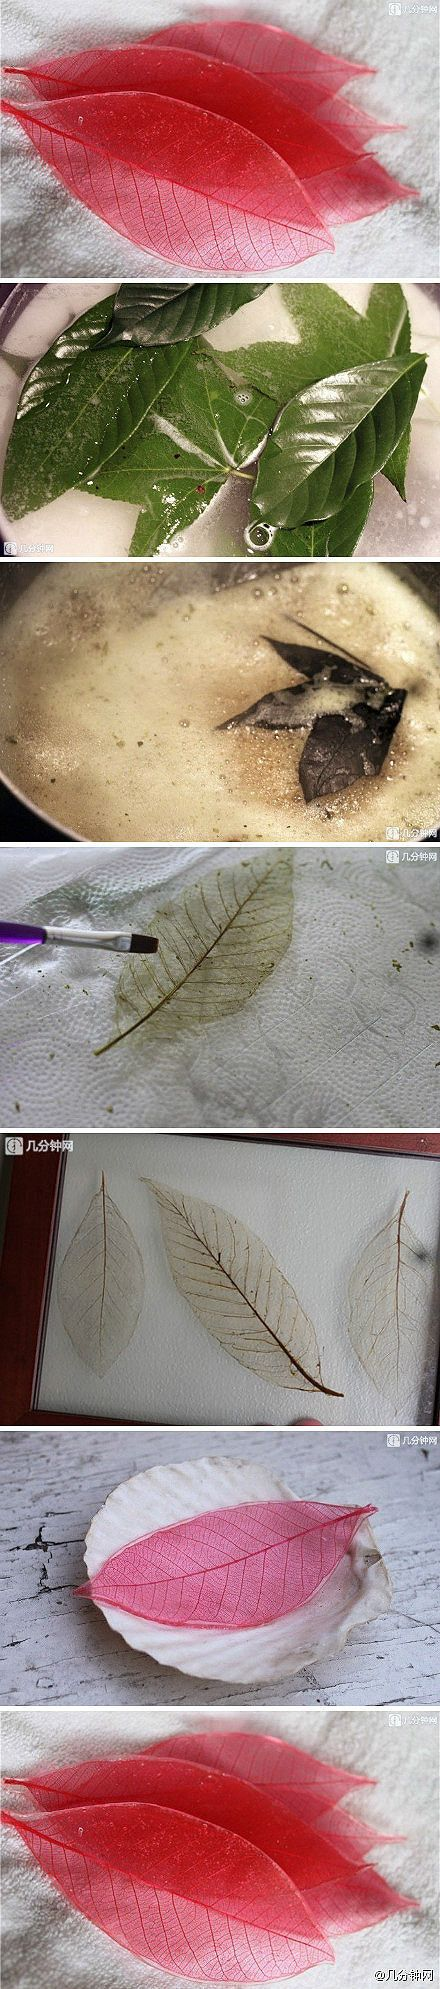 Something to try...  Simmer thick leaves in a baking soda mixture.  It should leave behind the skeleton of the leaf which you can then lightly paint or dye.